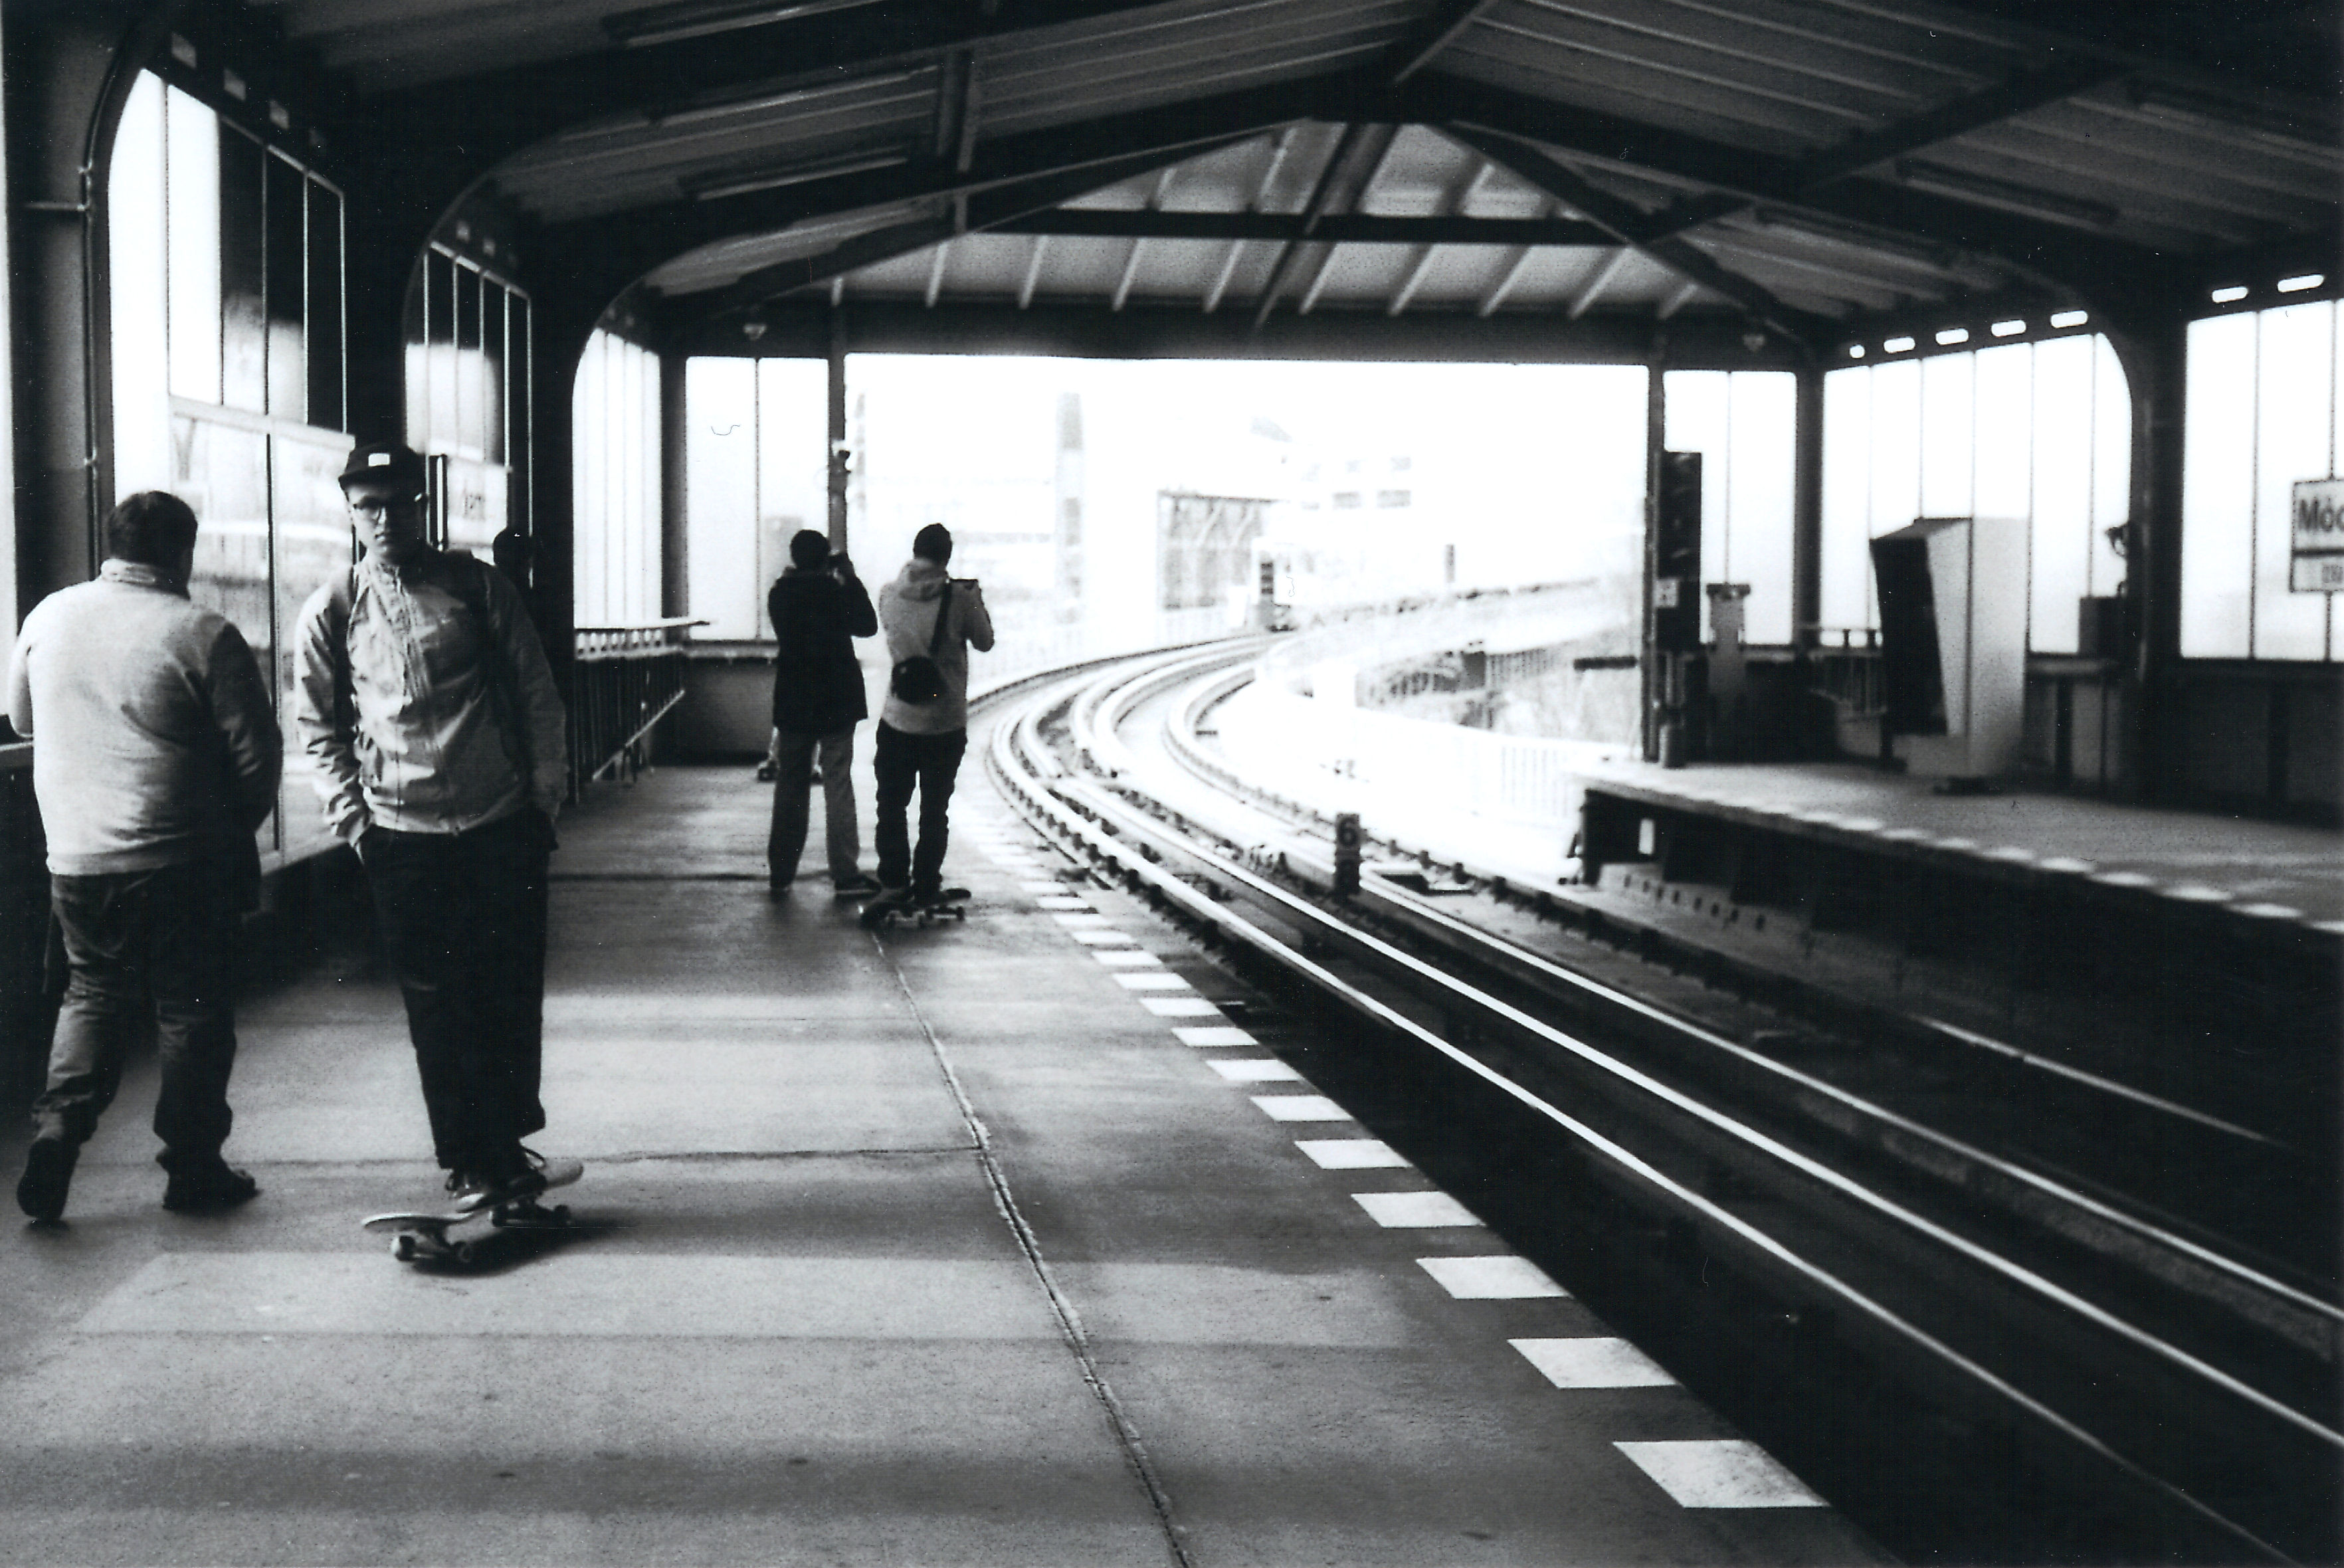 Waiting for the train photo